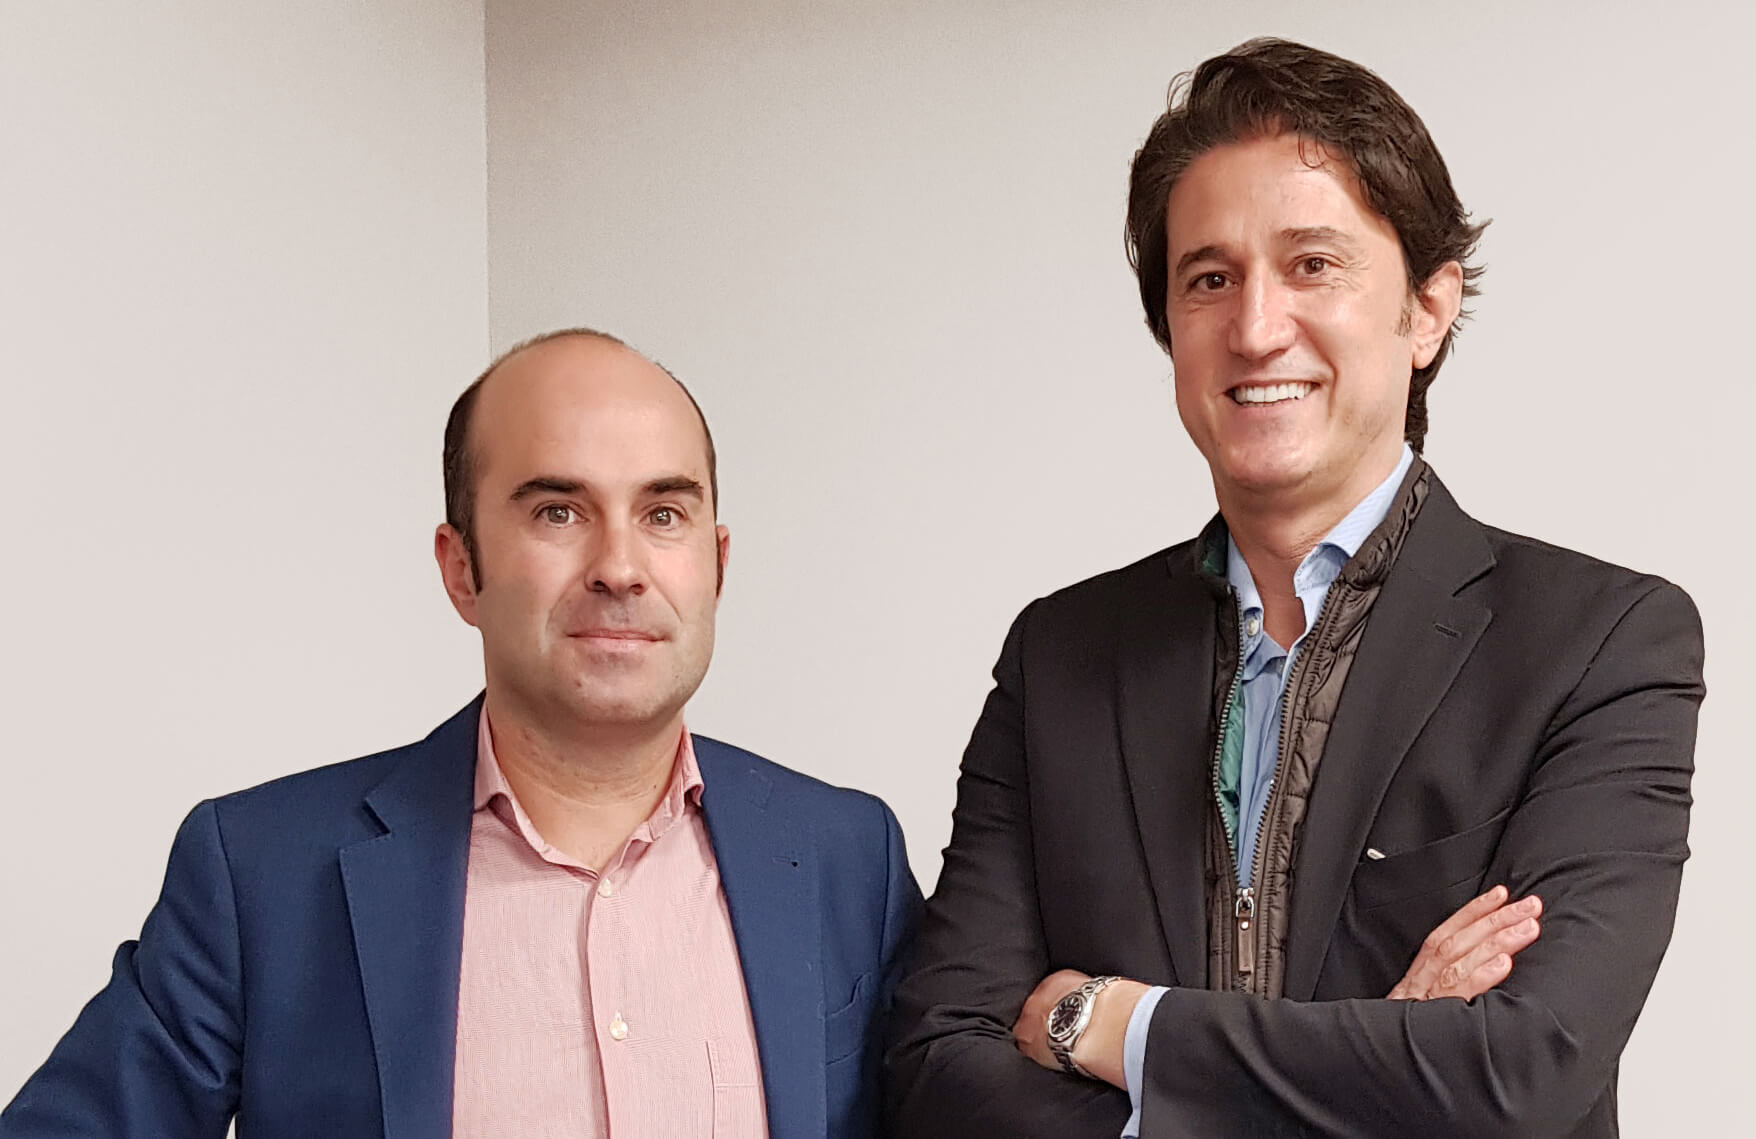 CALLAO CITY LIGHTS REACHES AN AGREEMENT WITH GRUPO INFINIA TO OFFER RETARGETING TO ITS CLIENTS